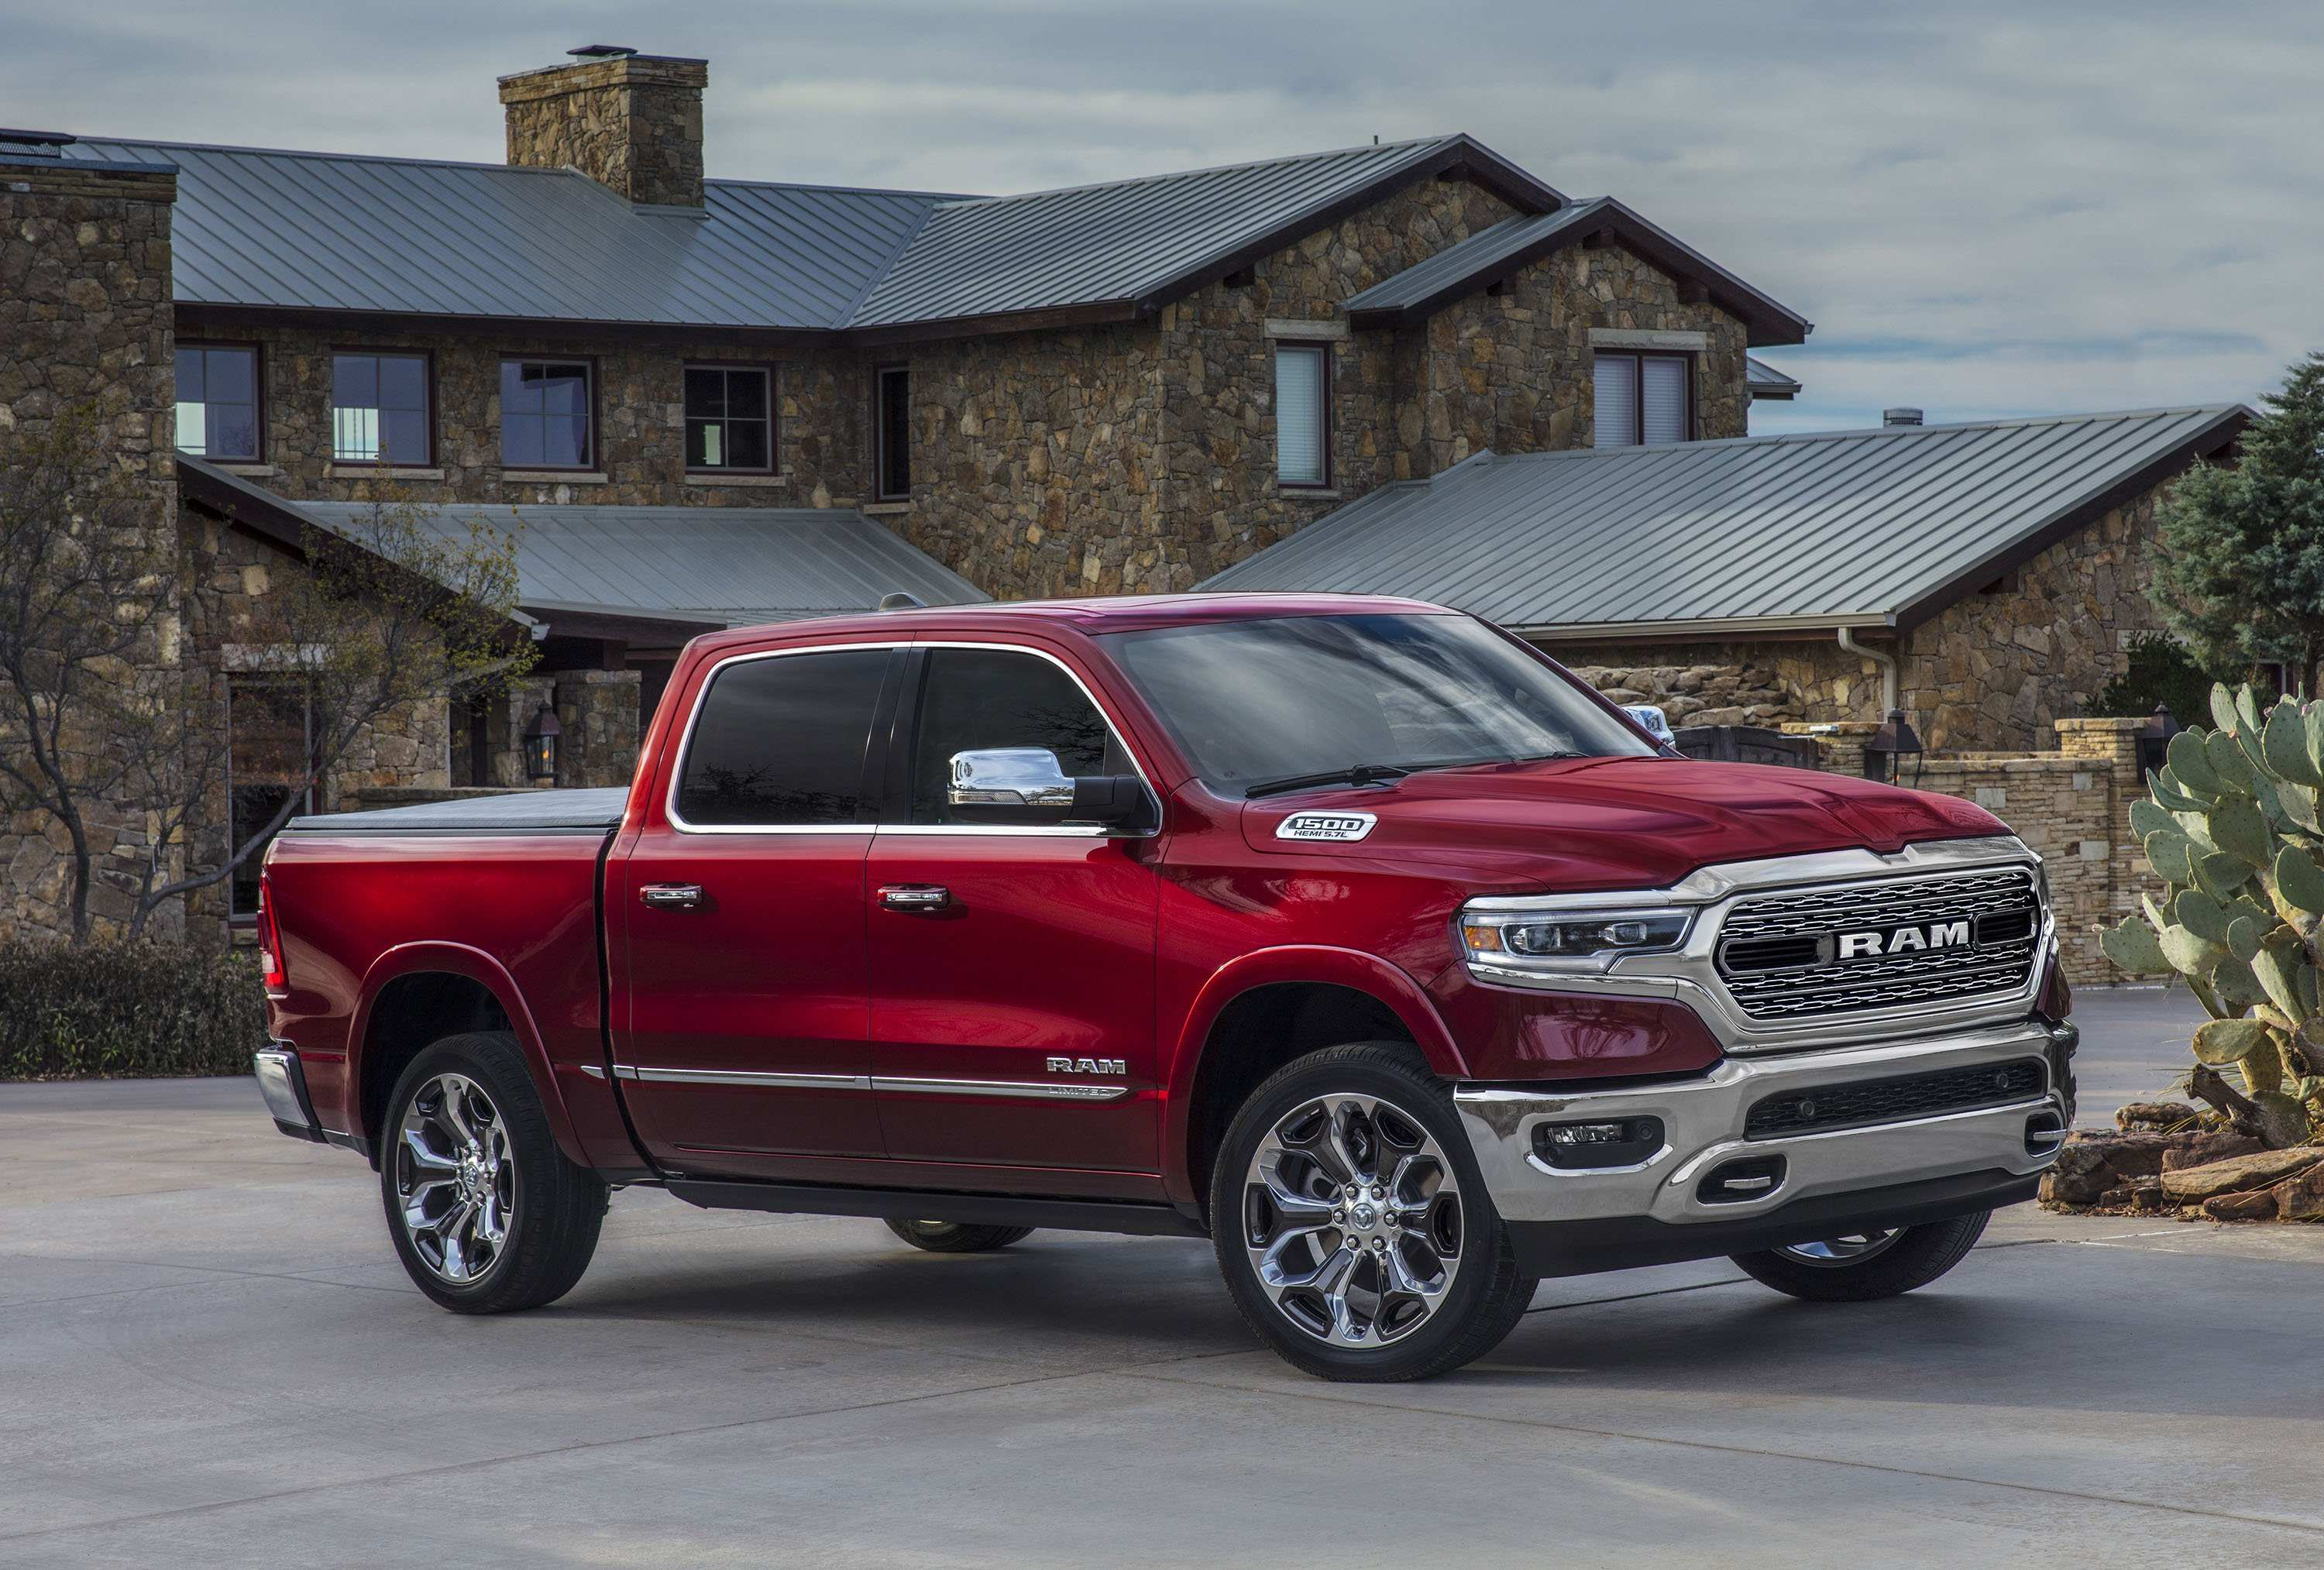 53 All New Dodge Pickup 2020 Review And Release Date